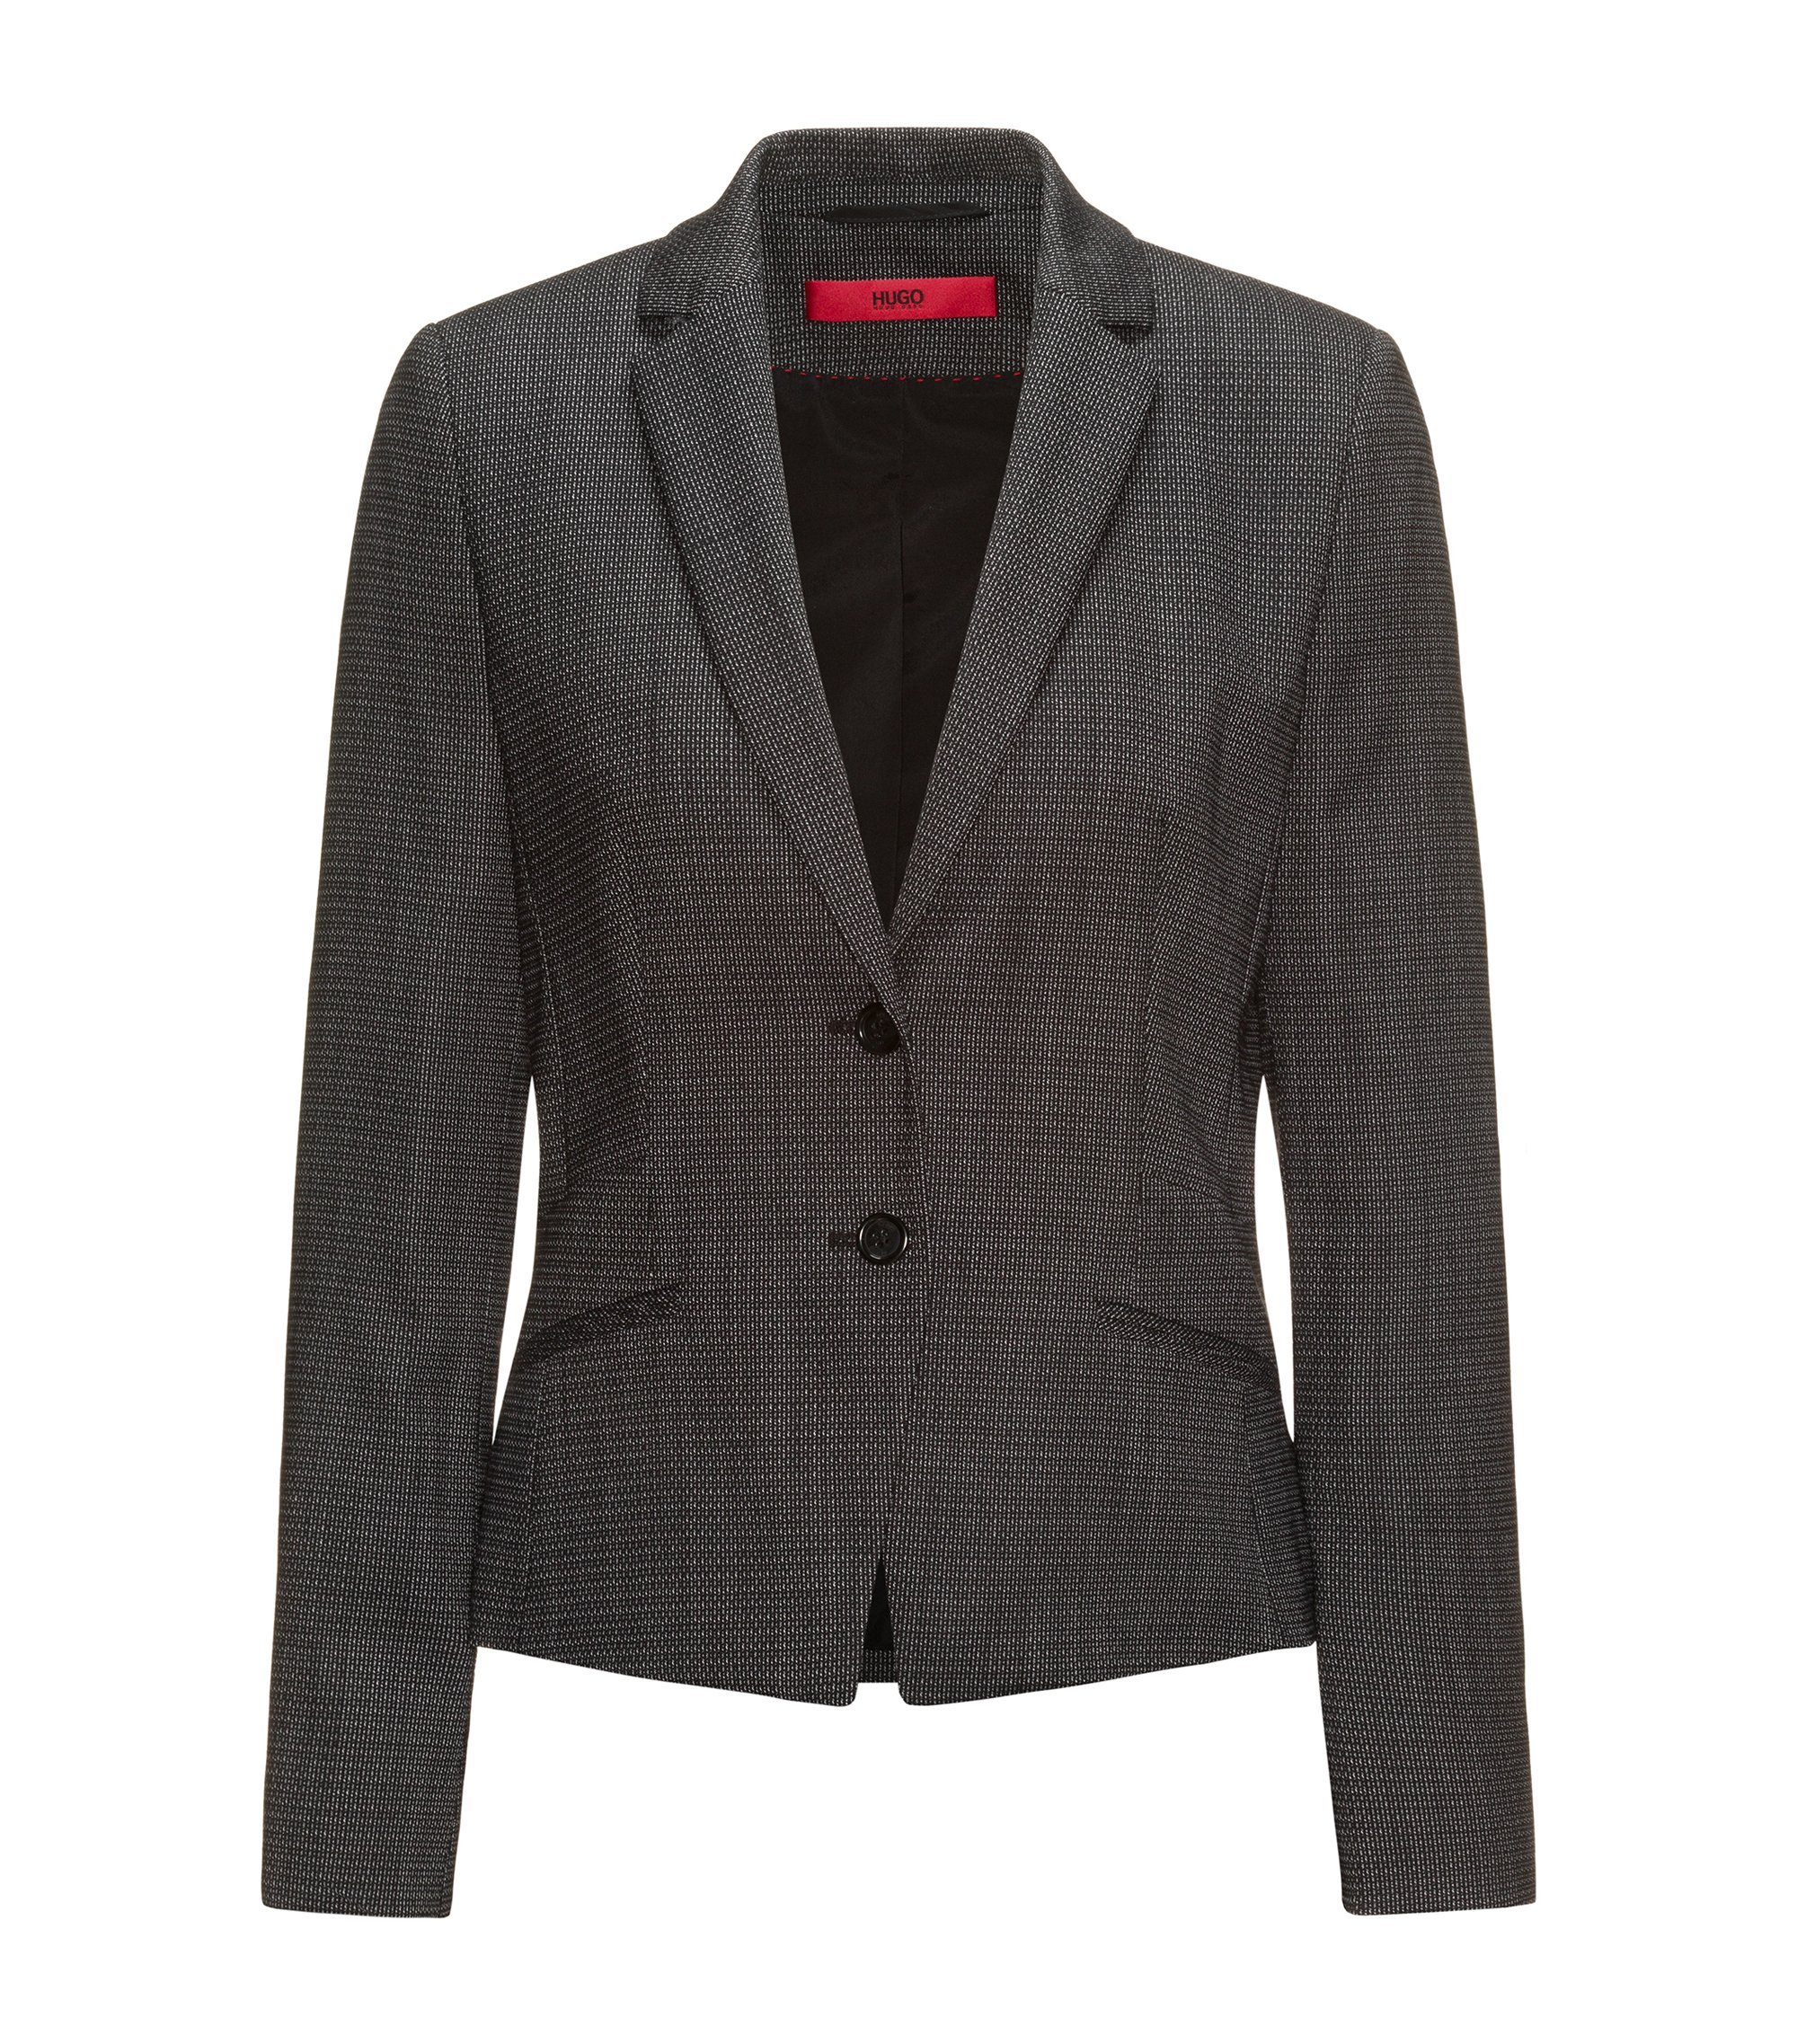 Regular-fit suit jacket in structured stretch wool, Patterned